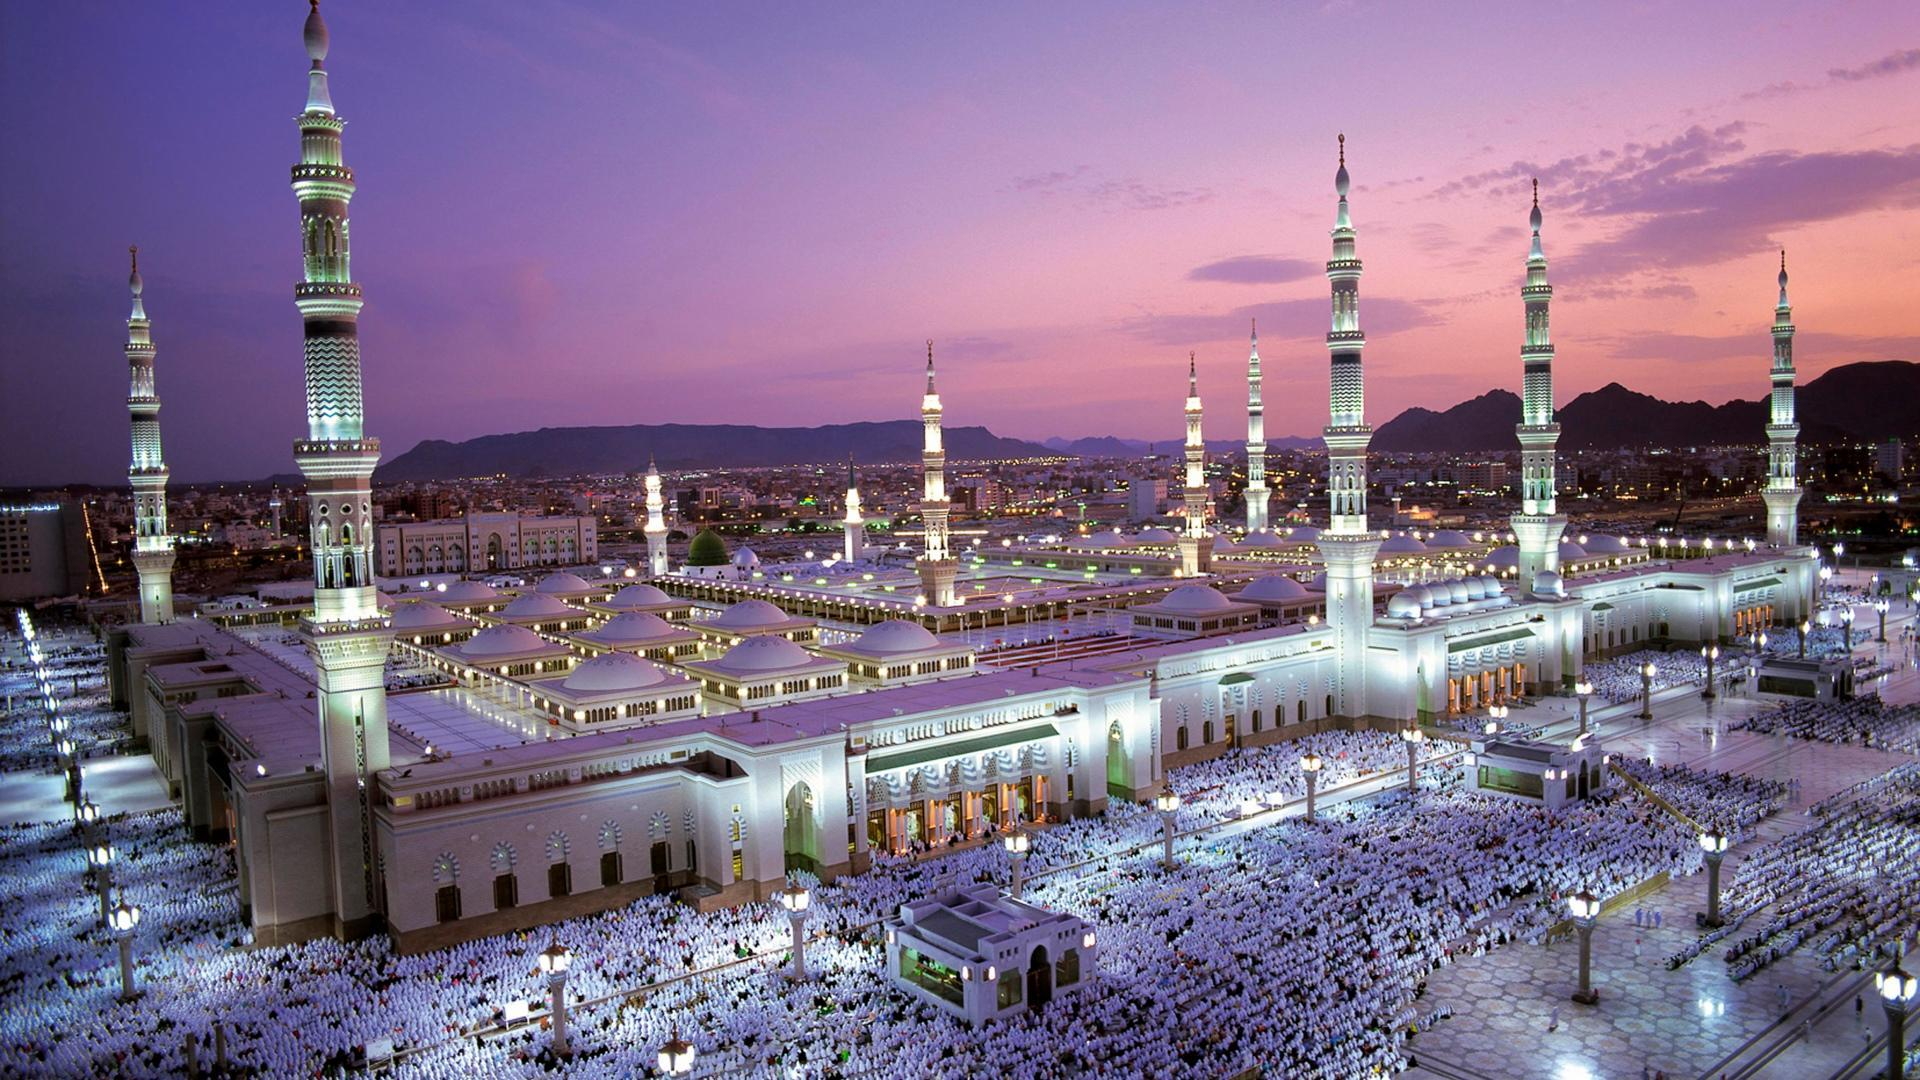 Kaaba Mecca Live Wallpaper islamic background for Android   APK 1920x1080